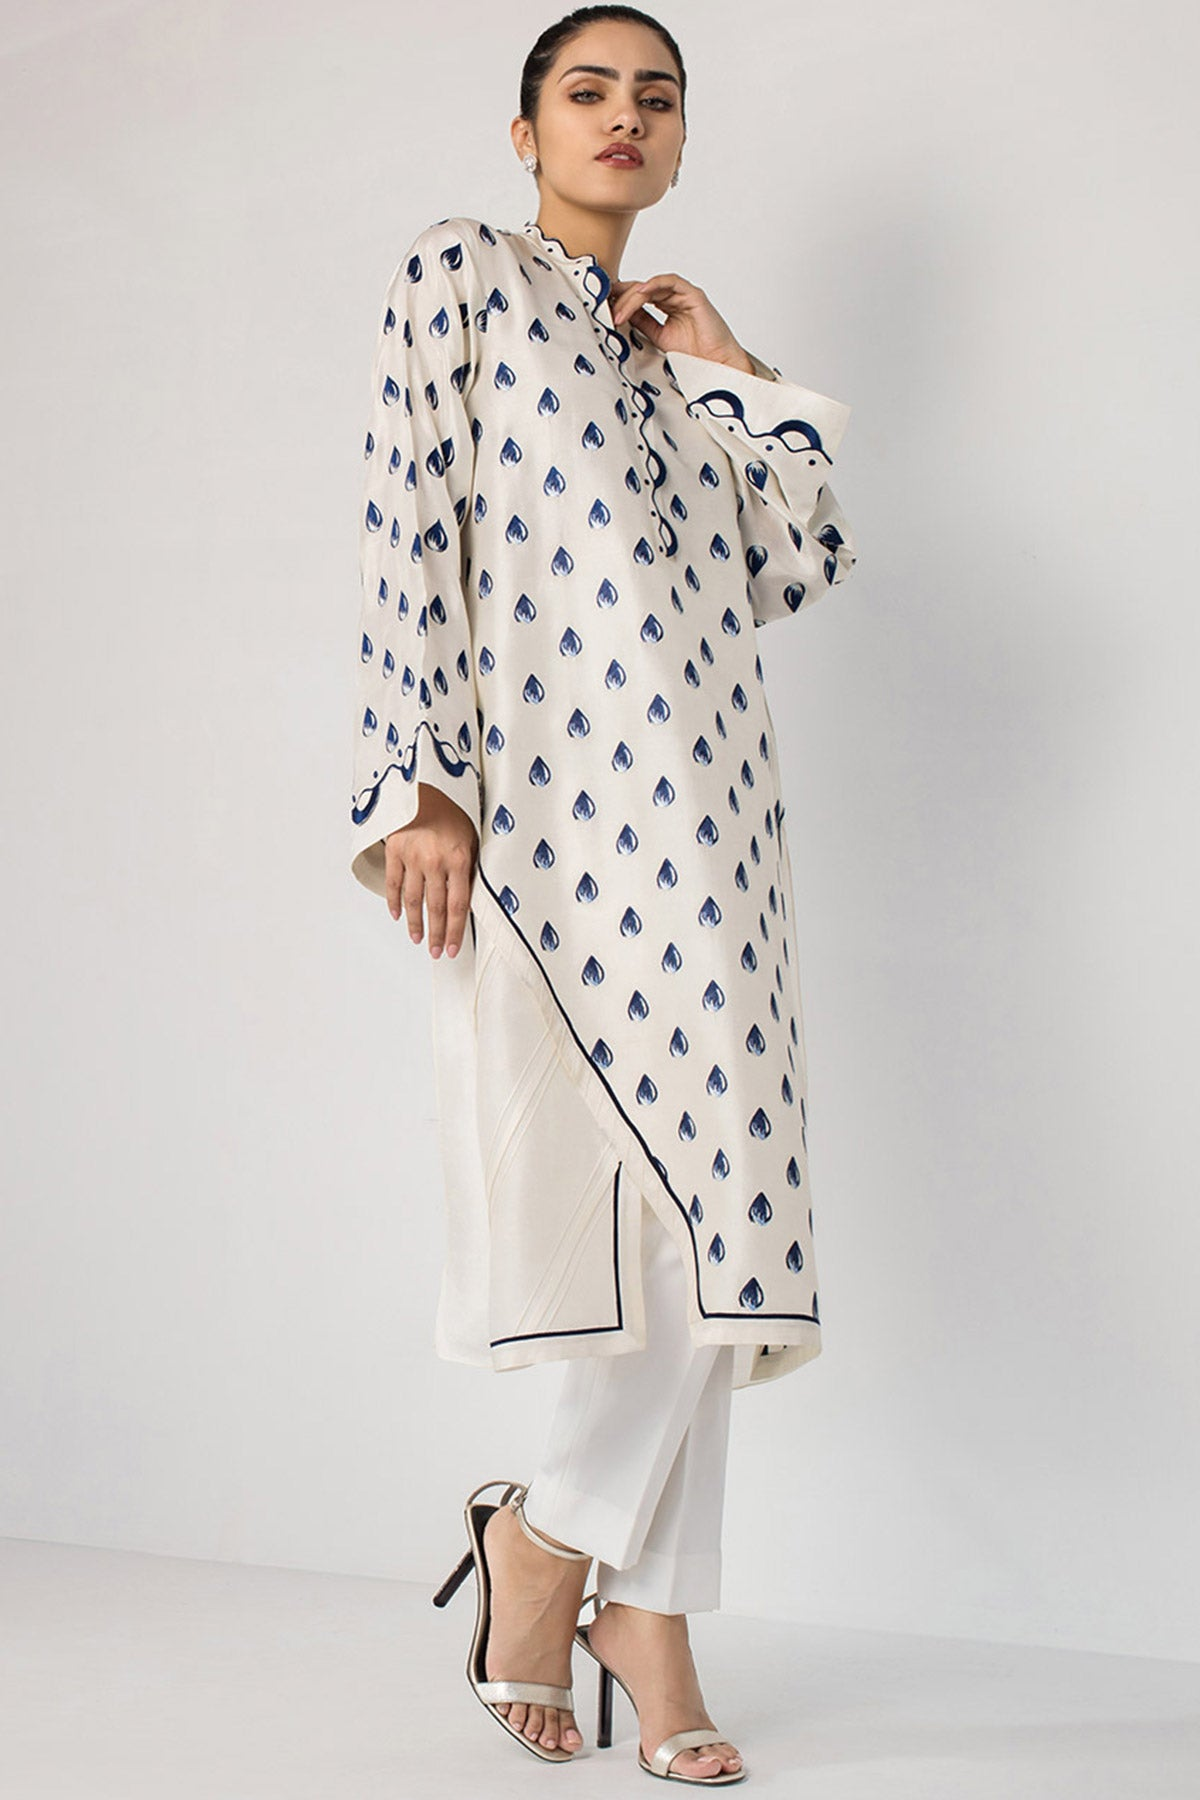 LONG KURTA WITH ASYMMETRIC HEMLINE - Sania Maskatiya